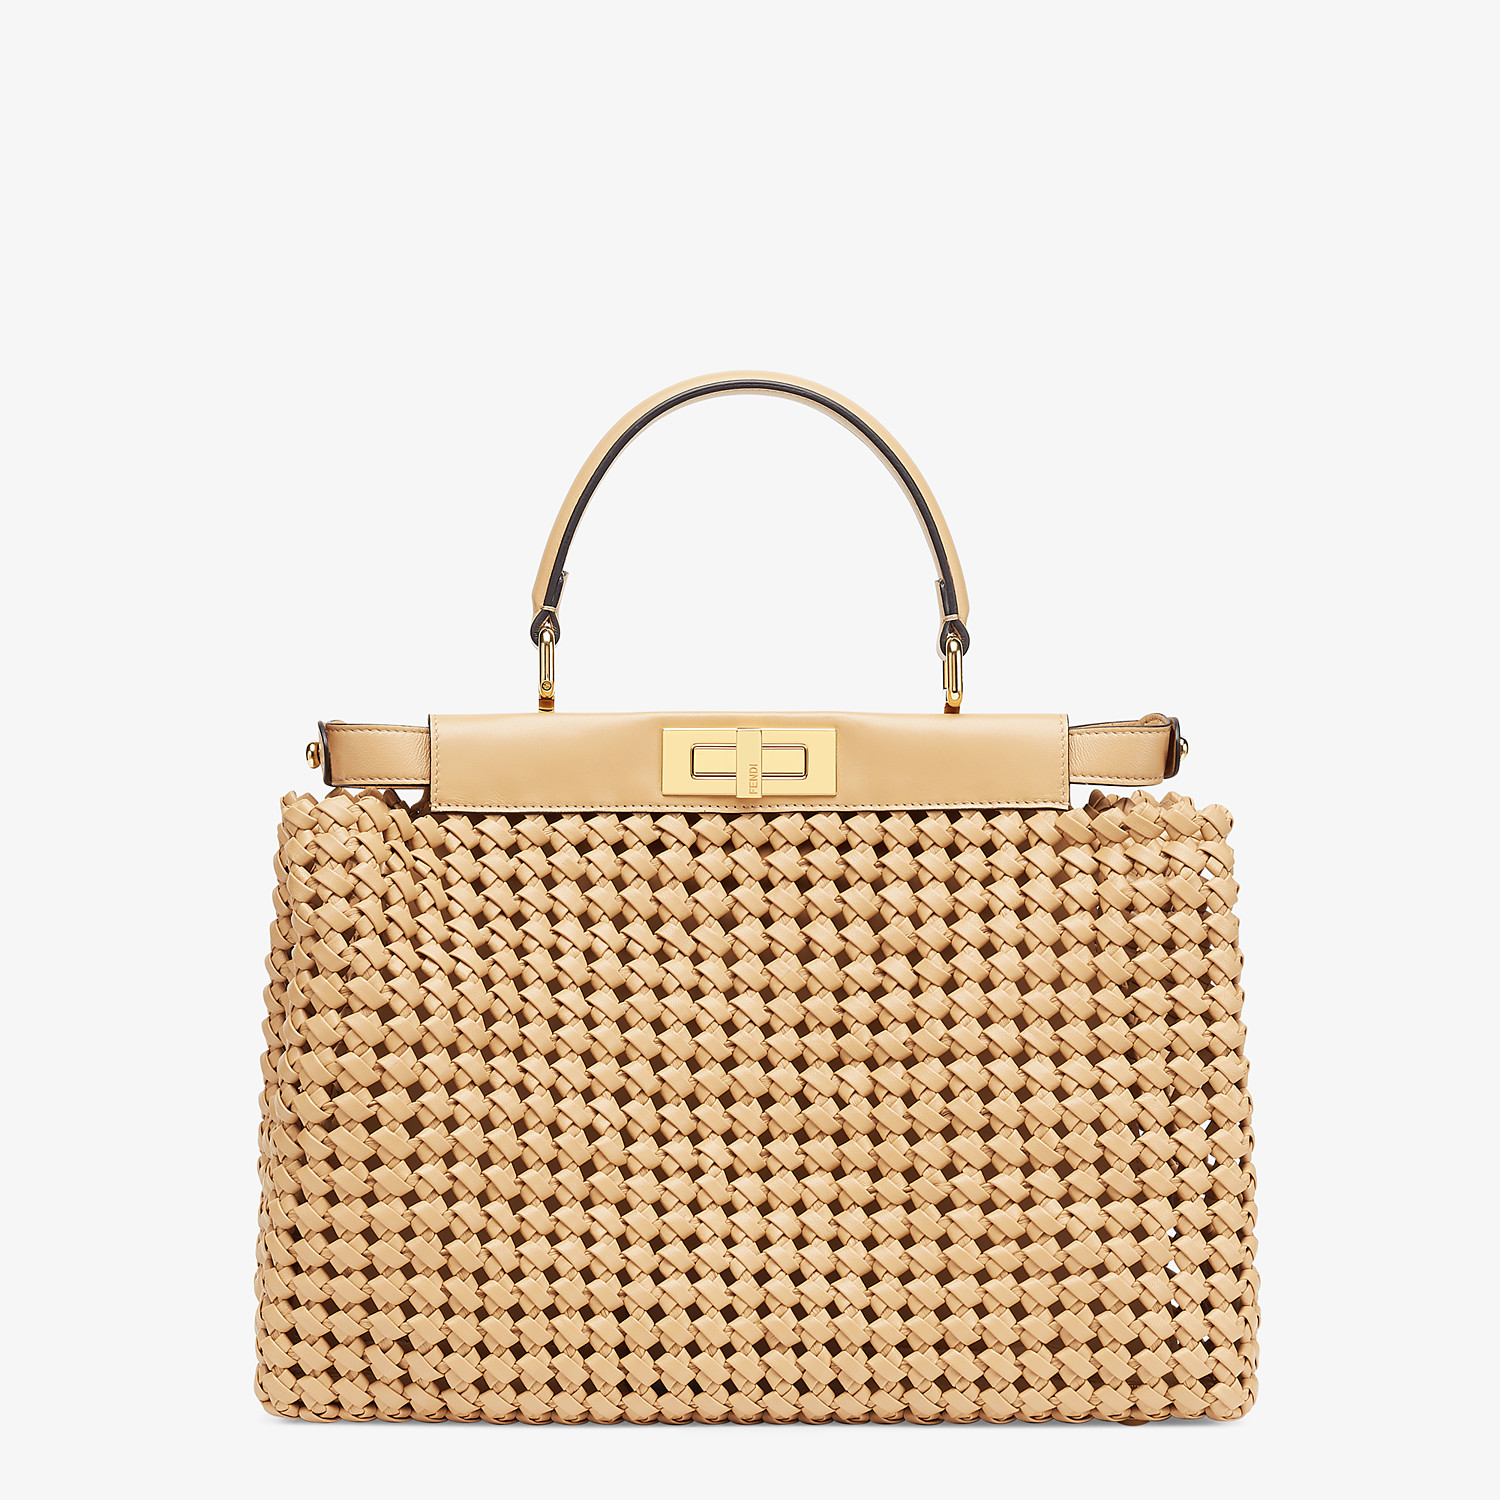 FENDI PEEKABOO ICONIC MEDIUM - Beige leather interlace bag - view 4 detail